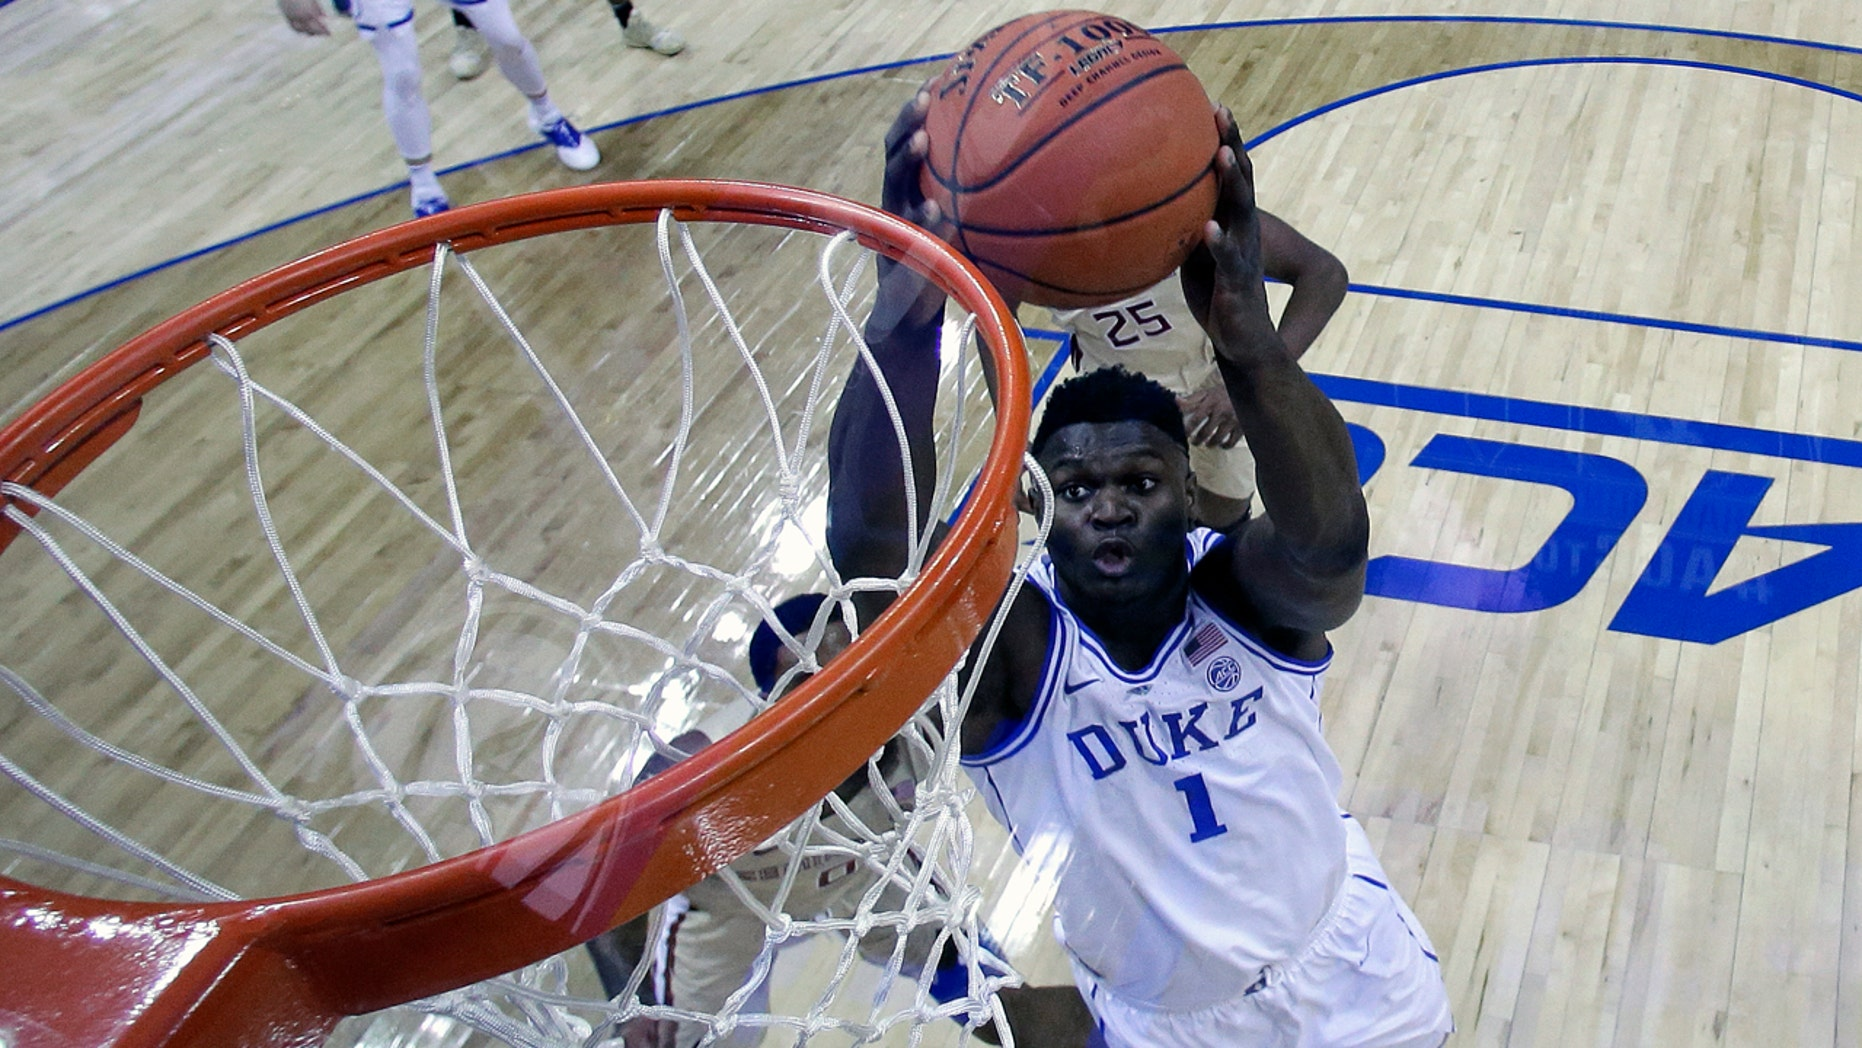 Sion Williamson led Duke into the title of the ACS tournament and seed of No. 1. (AP Photo / Chuck Burton)